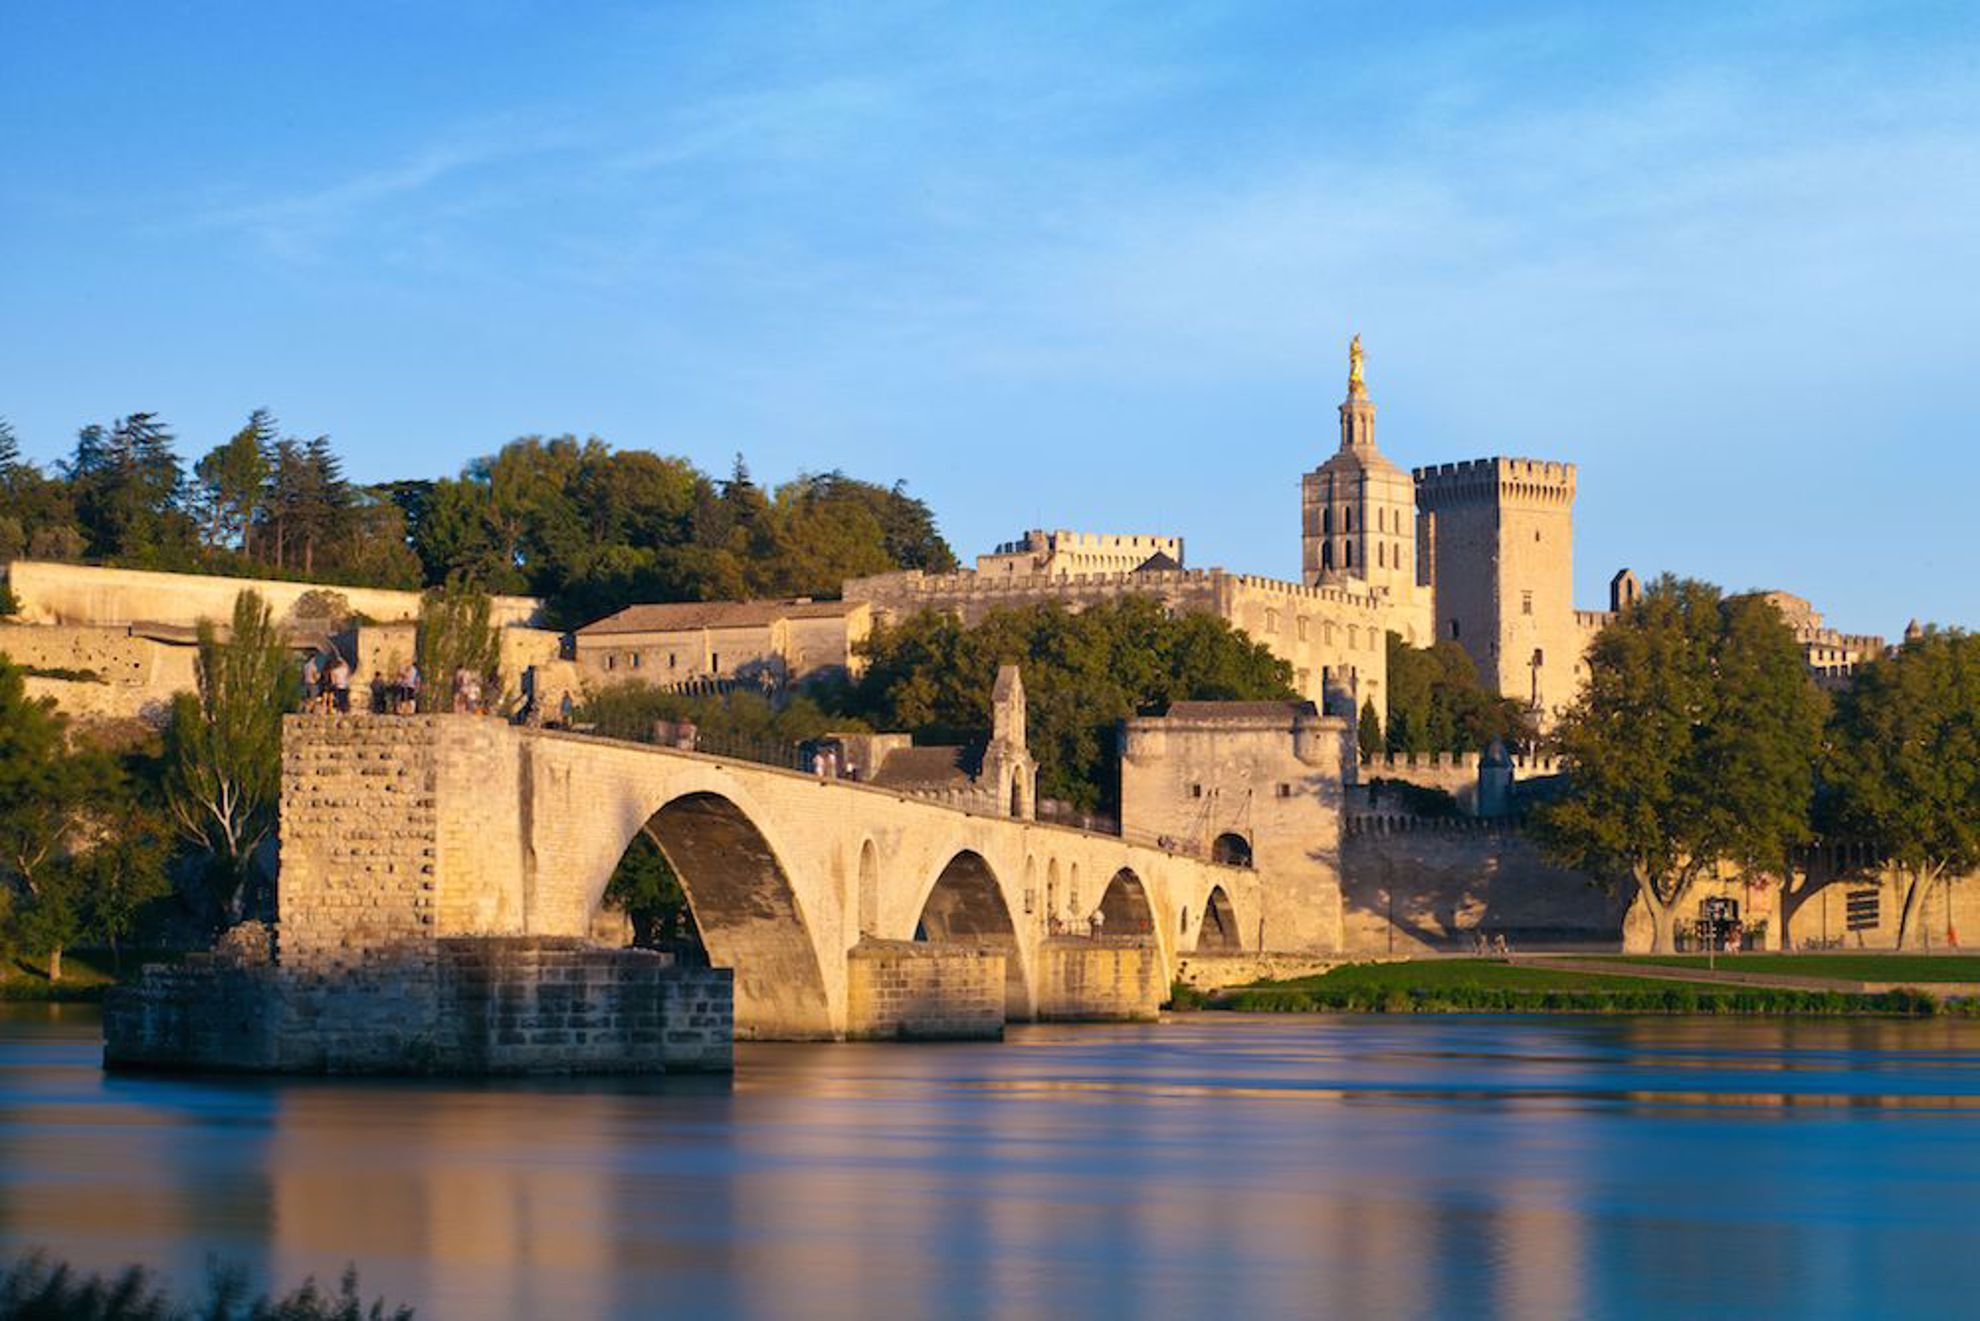 Avignon ancient bridge